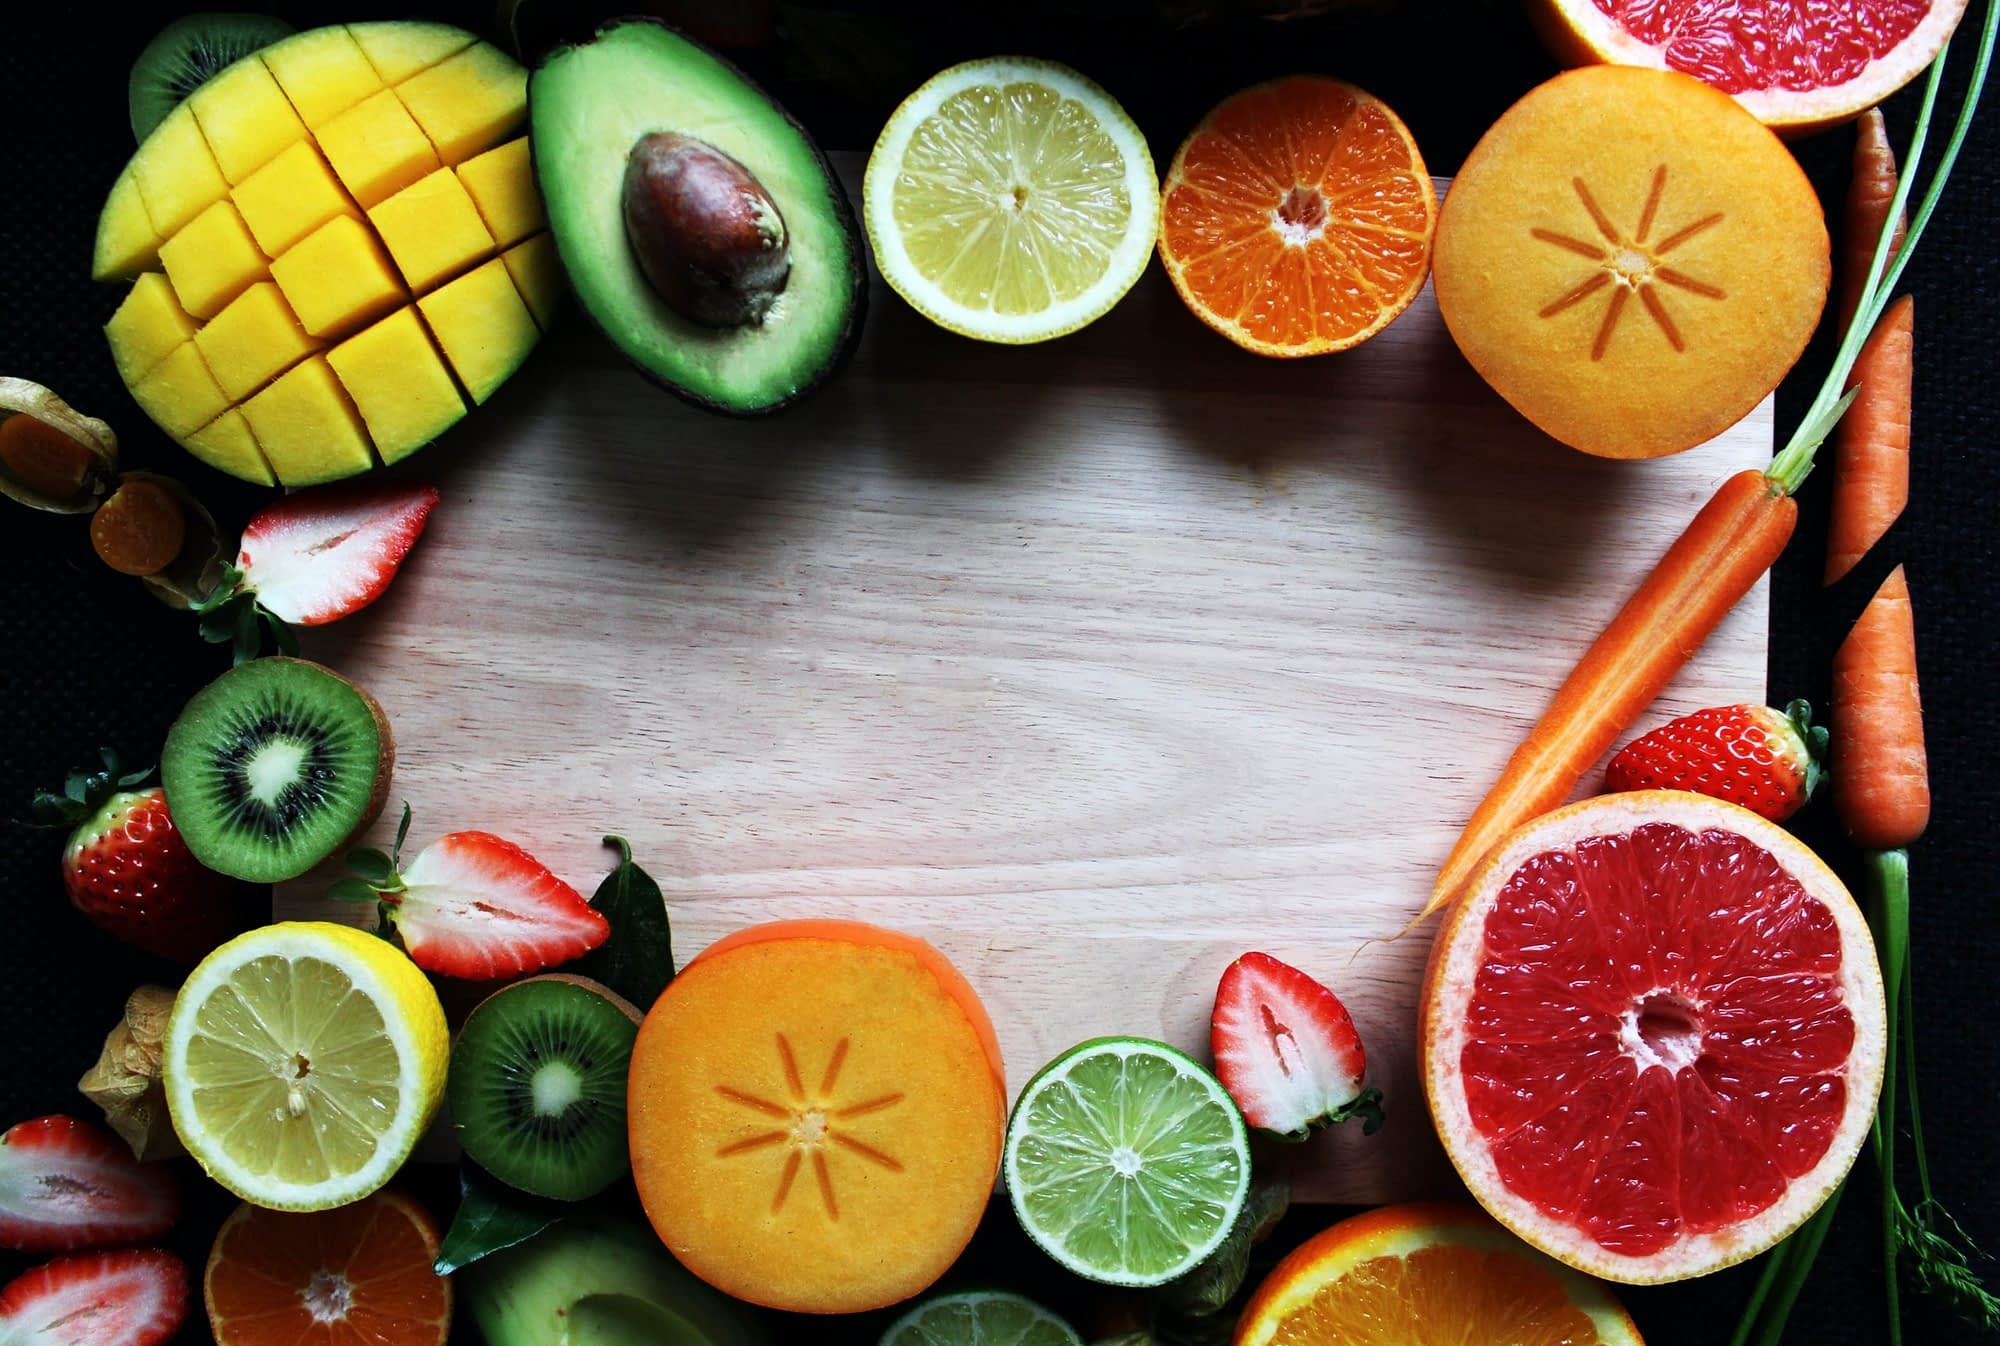 Performing an organic juice cleanse involves the extraction of liquid from fruits and vegetables while removing the solid parts